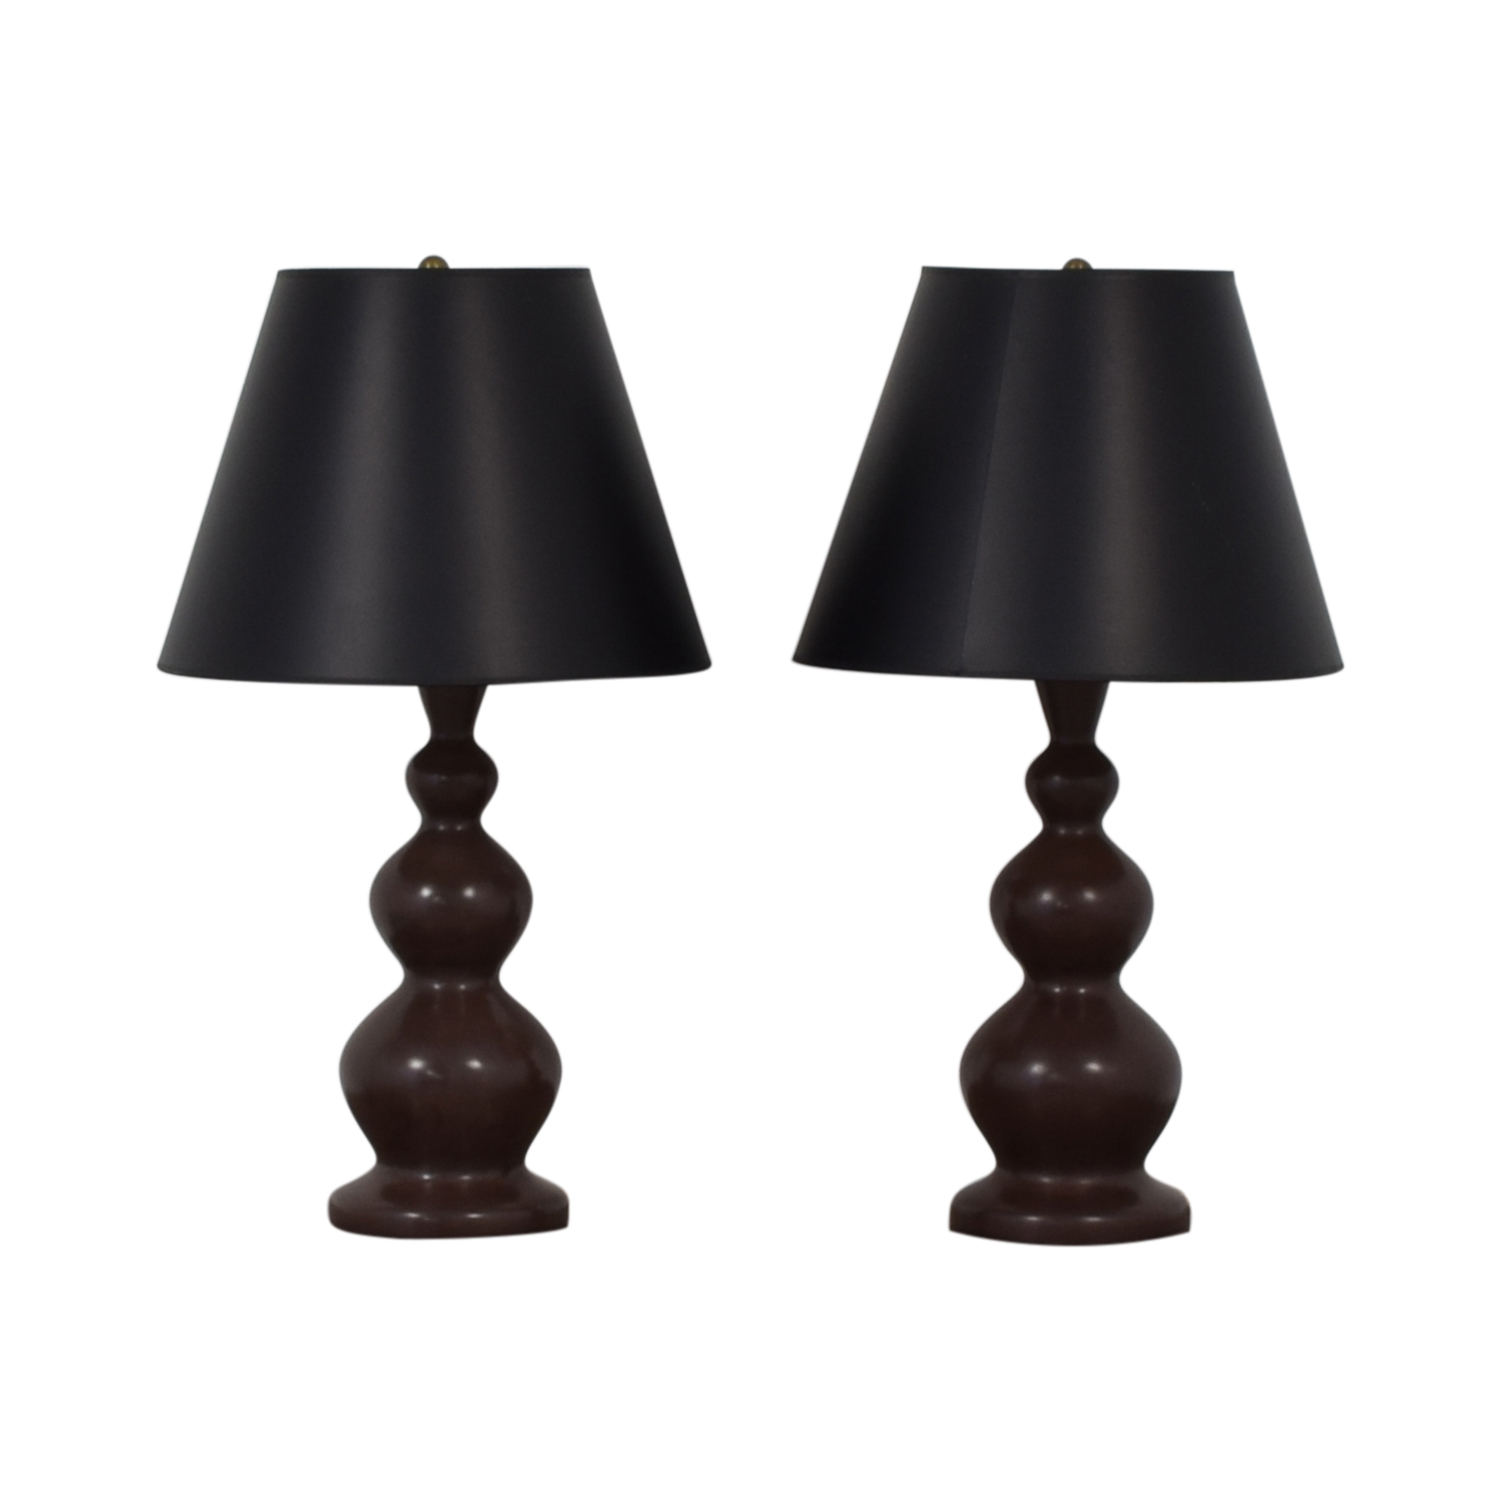 buy Salgado Saucier Gene Plaster Table Lamps Salgado Saucier